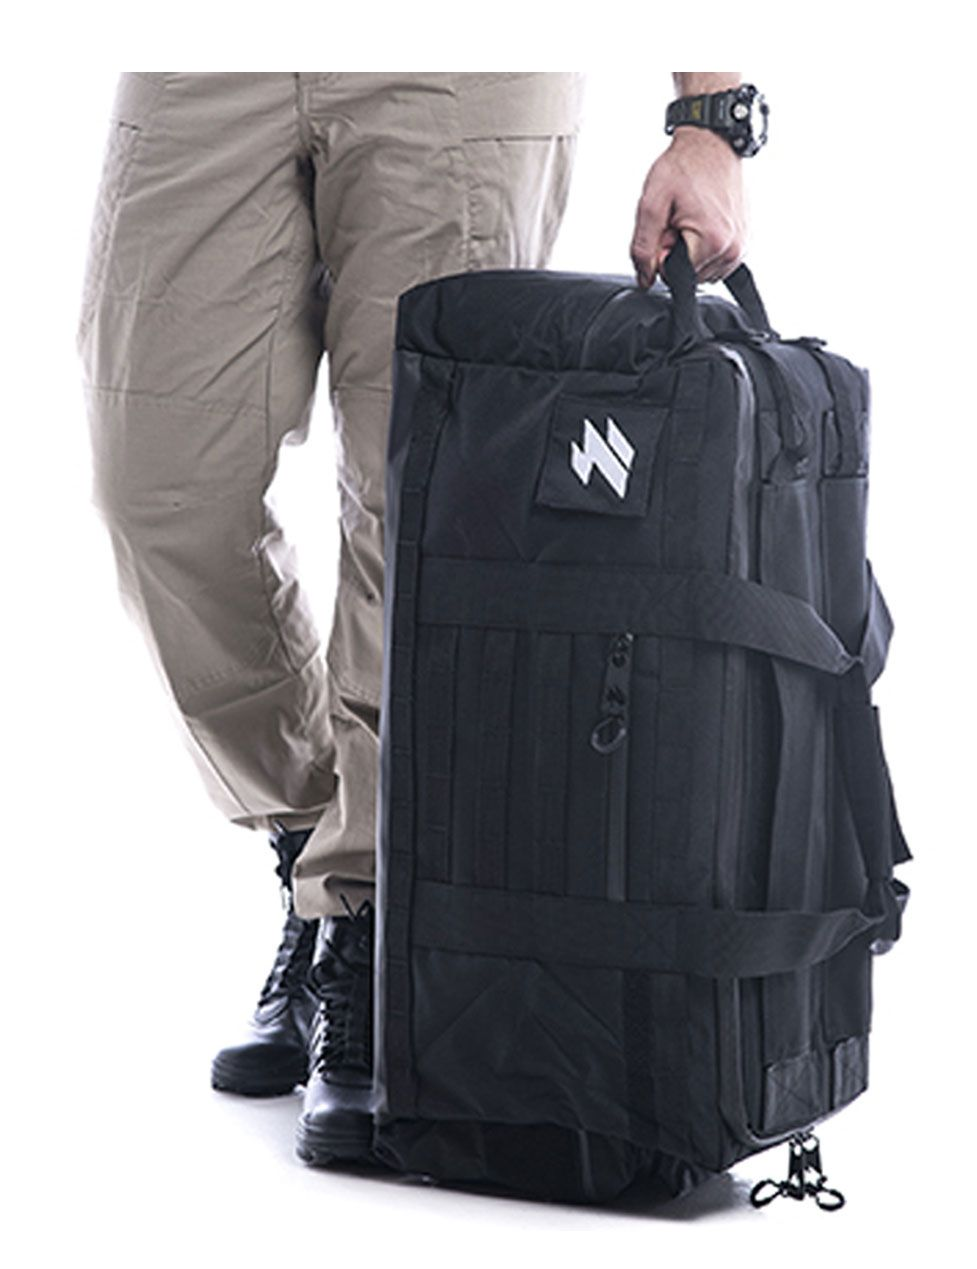 Nansus stor 70l bag